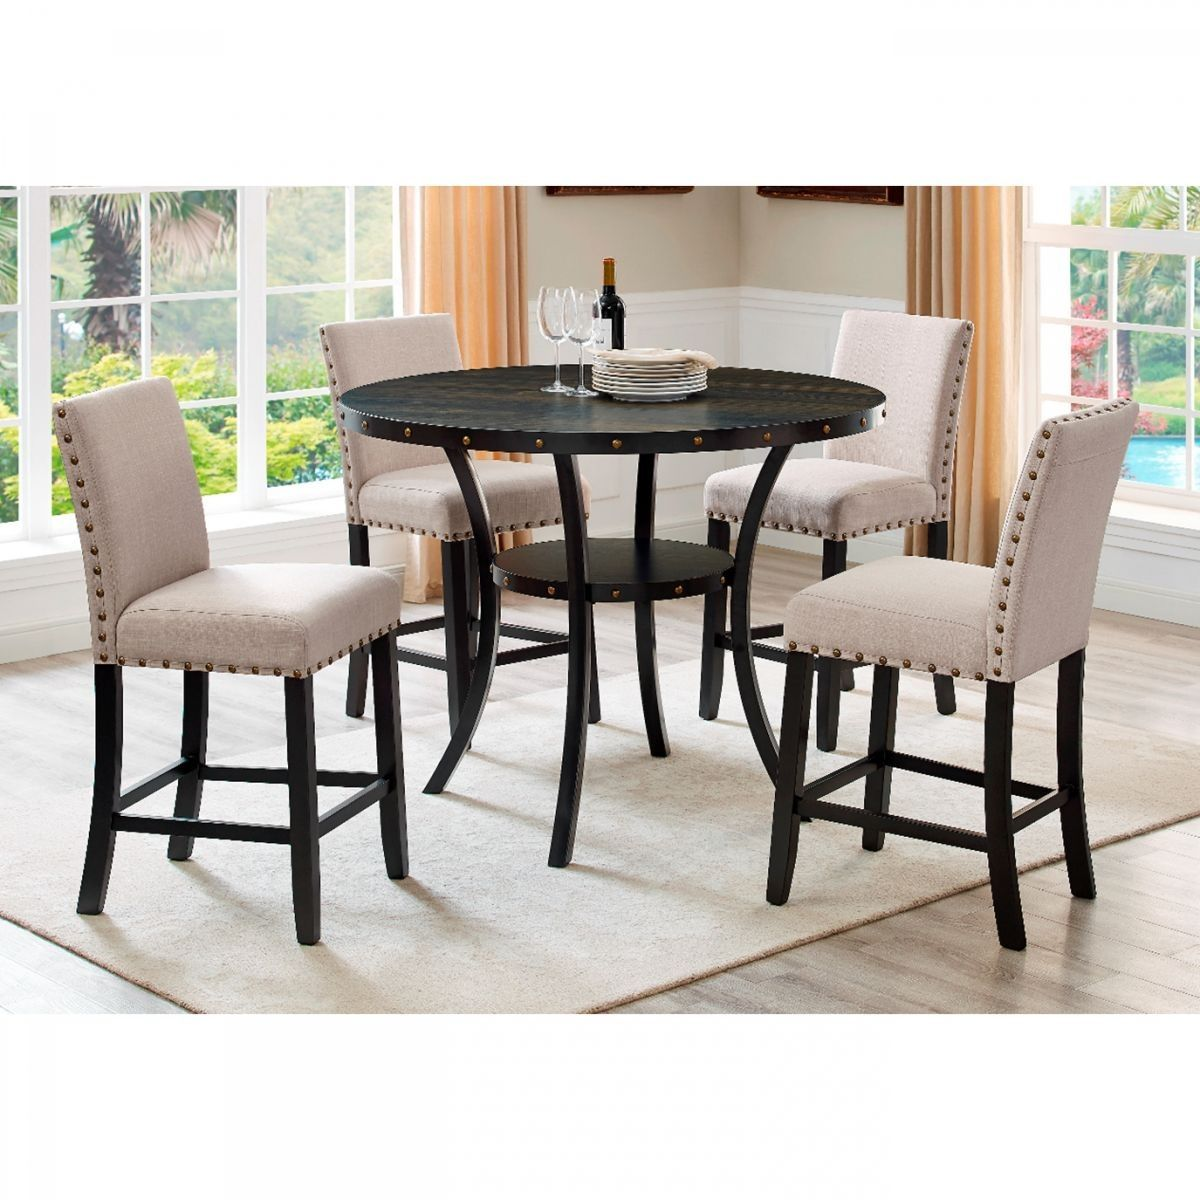 Excellent Madison 5 Pc Counter Height Dining Room Casual Dining Gmtry Best Dining Table And Chair Ideas Images Gmtryco